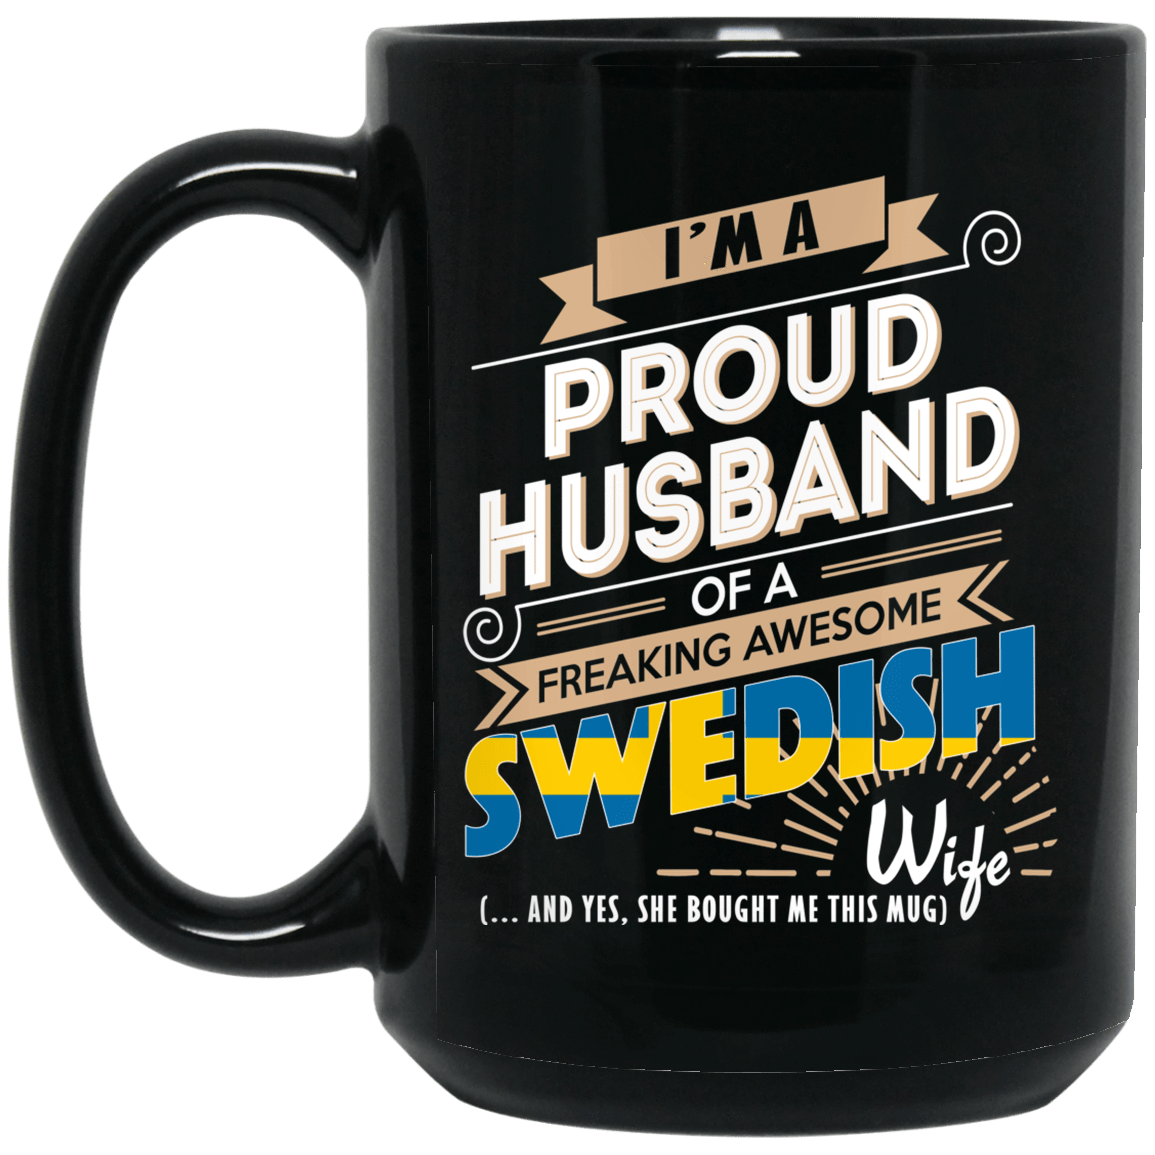 Proud Husband Of A Freaking Awesome Swedish Wife Mug 1066-10182-72136510-49311 - Tee Ript